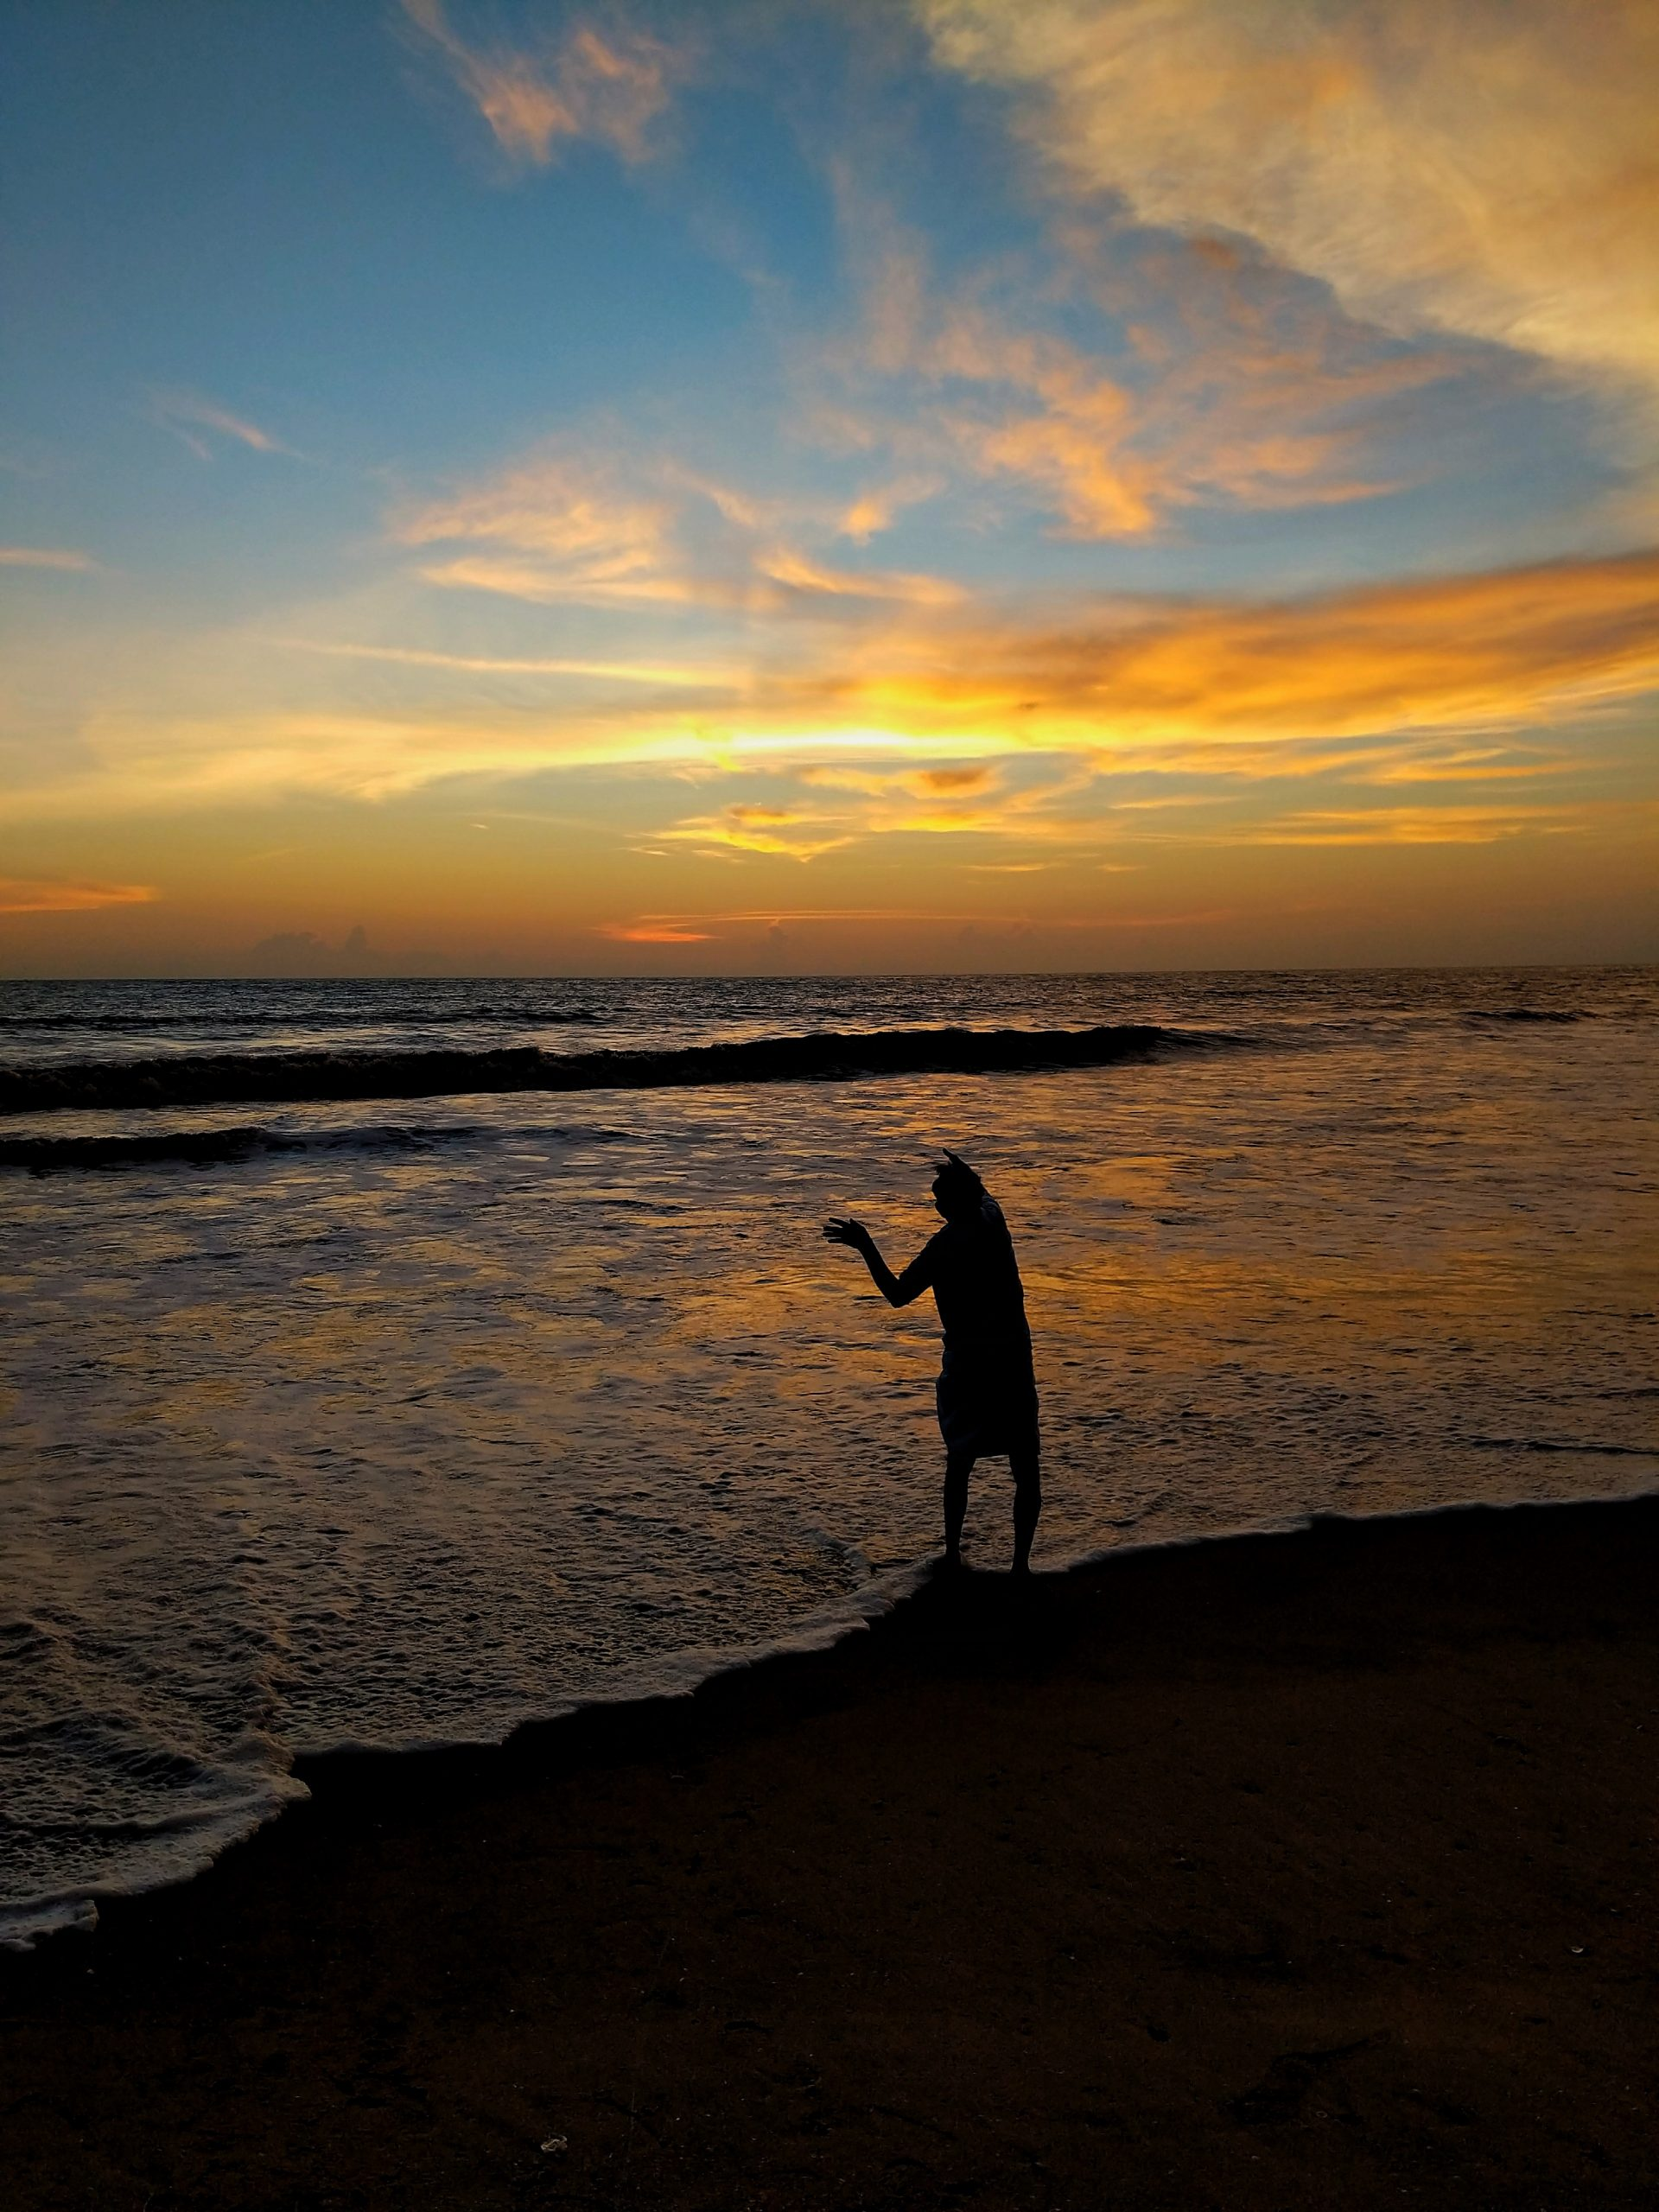 A man fishing at the time of beautiful sunset.